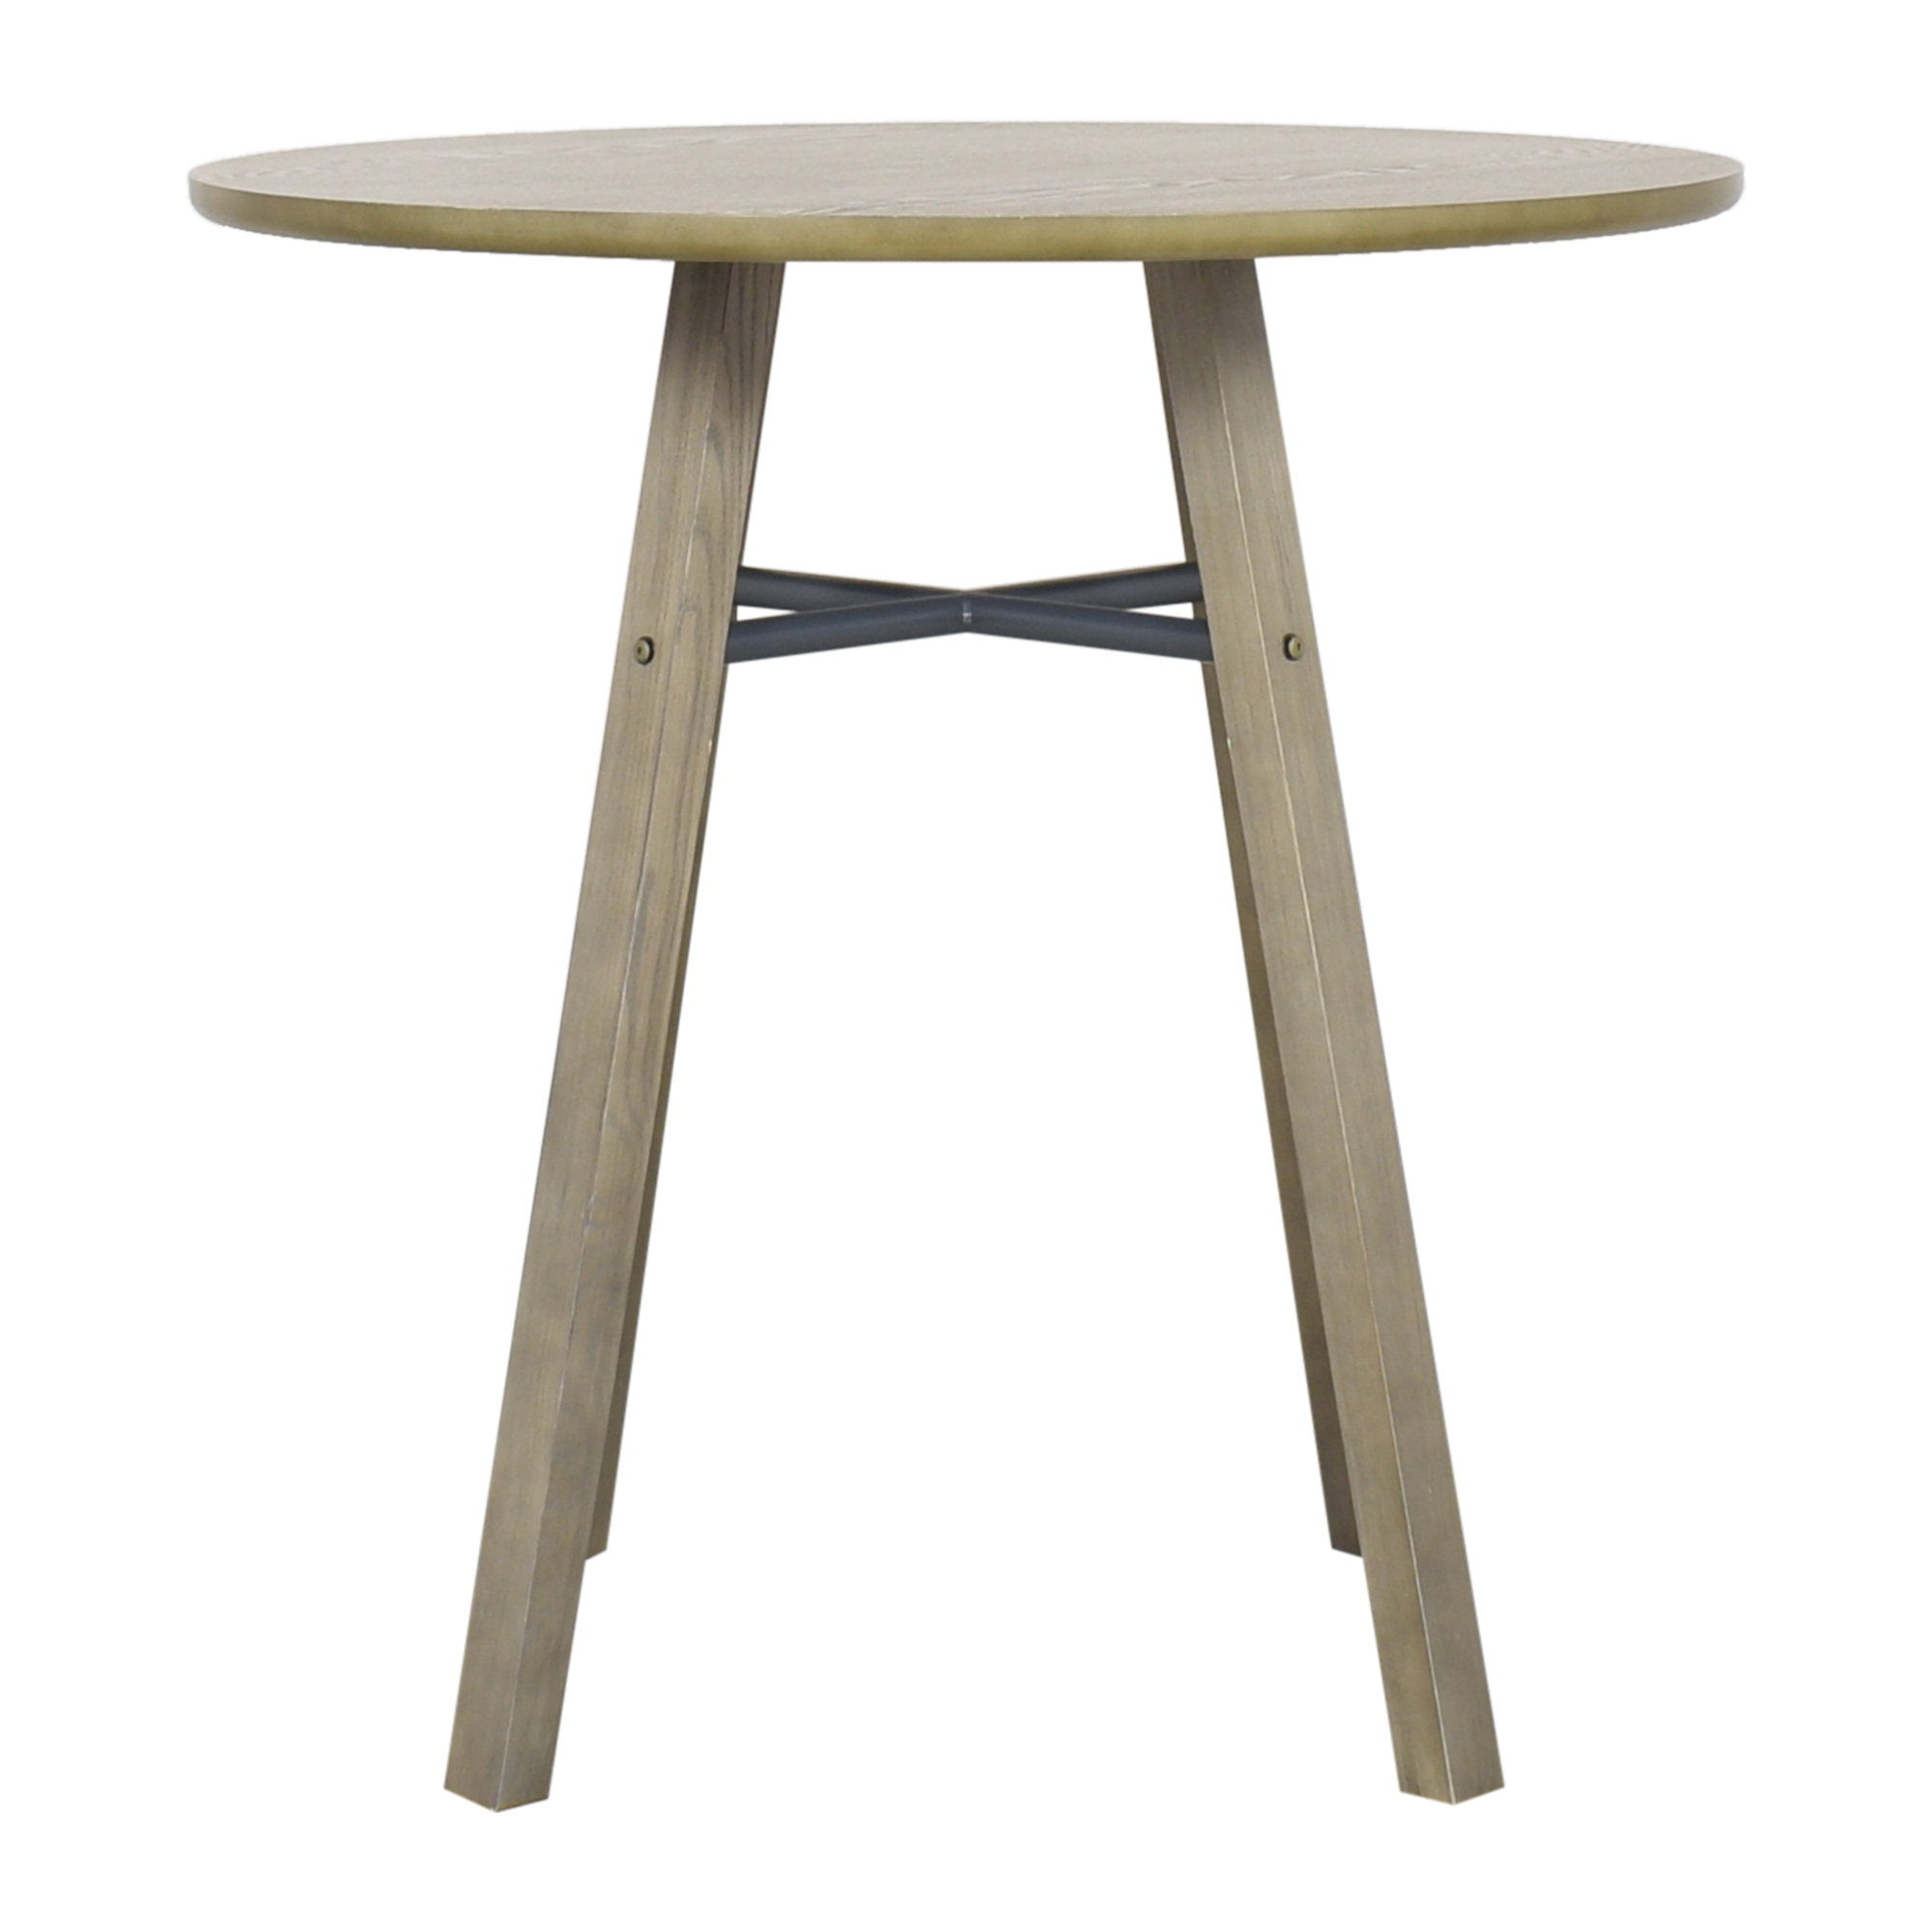 Crate & Barrel Crate & Barrel Bar Height Round Table dimensions